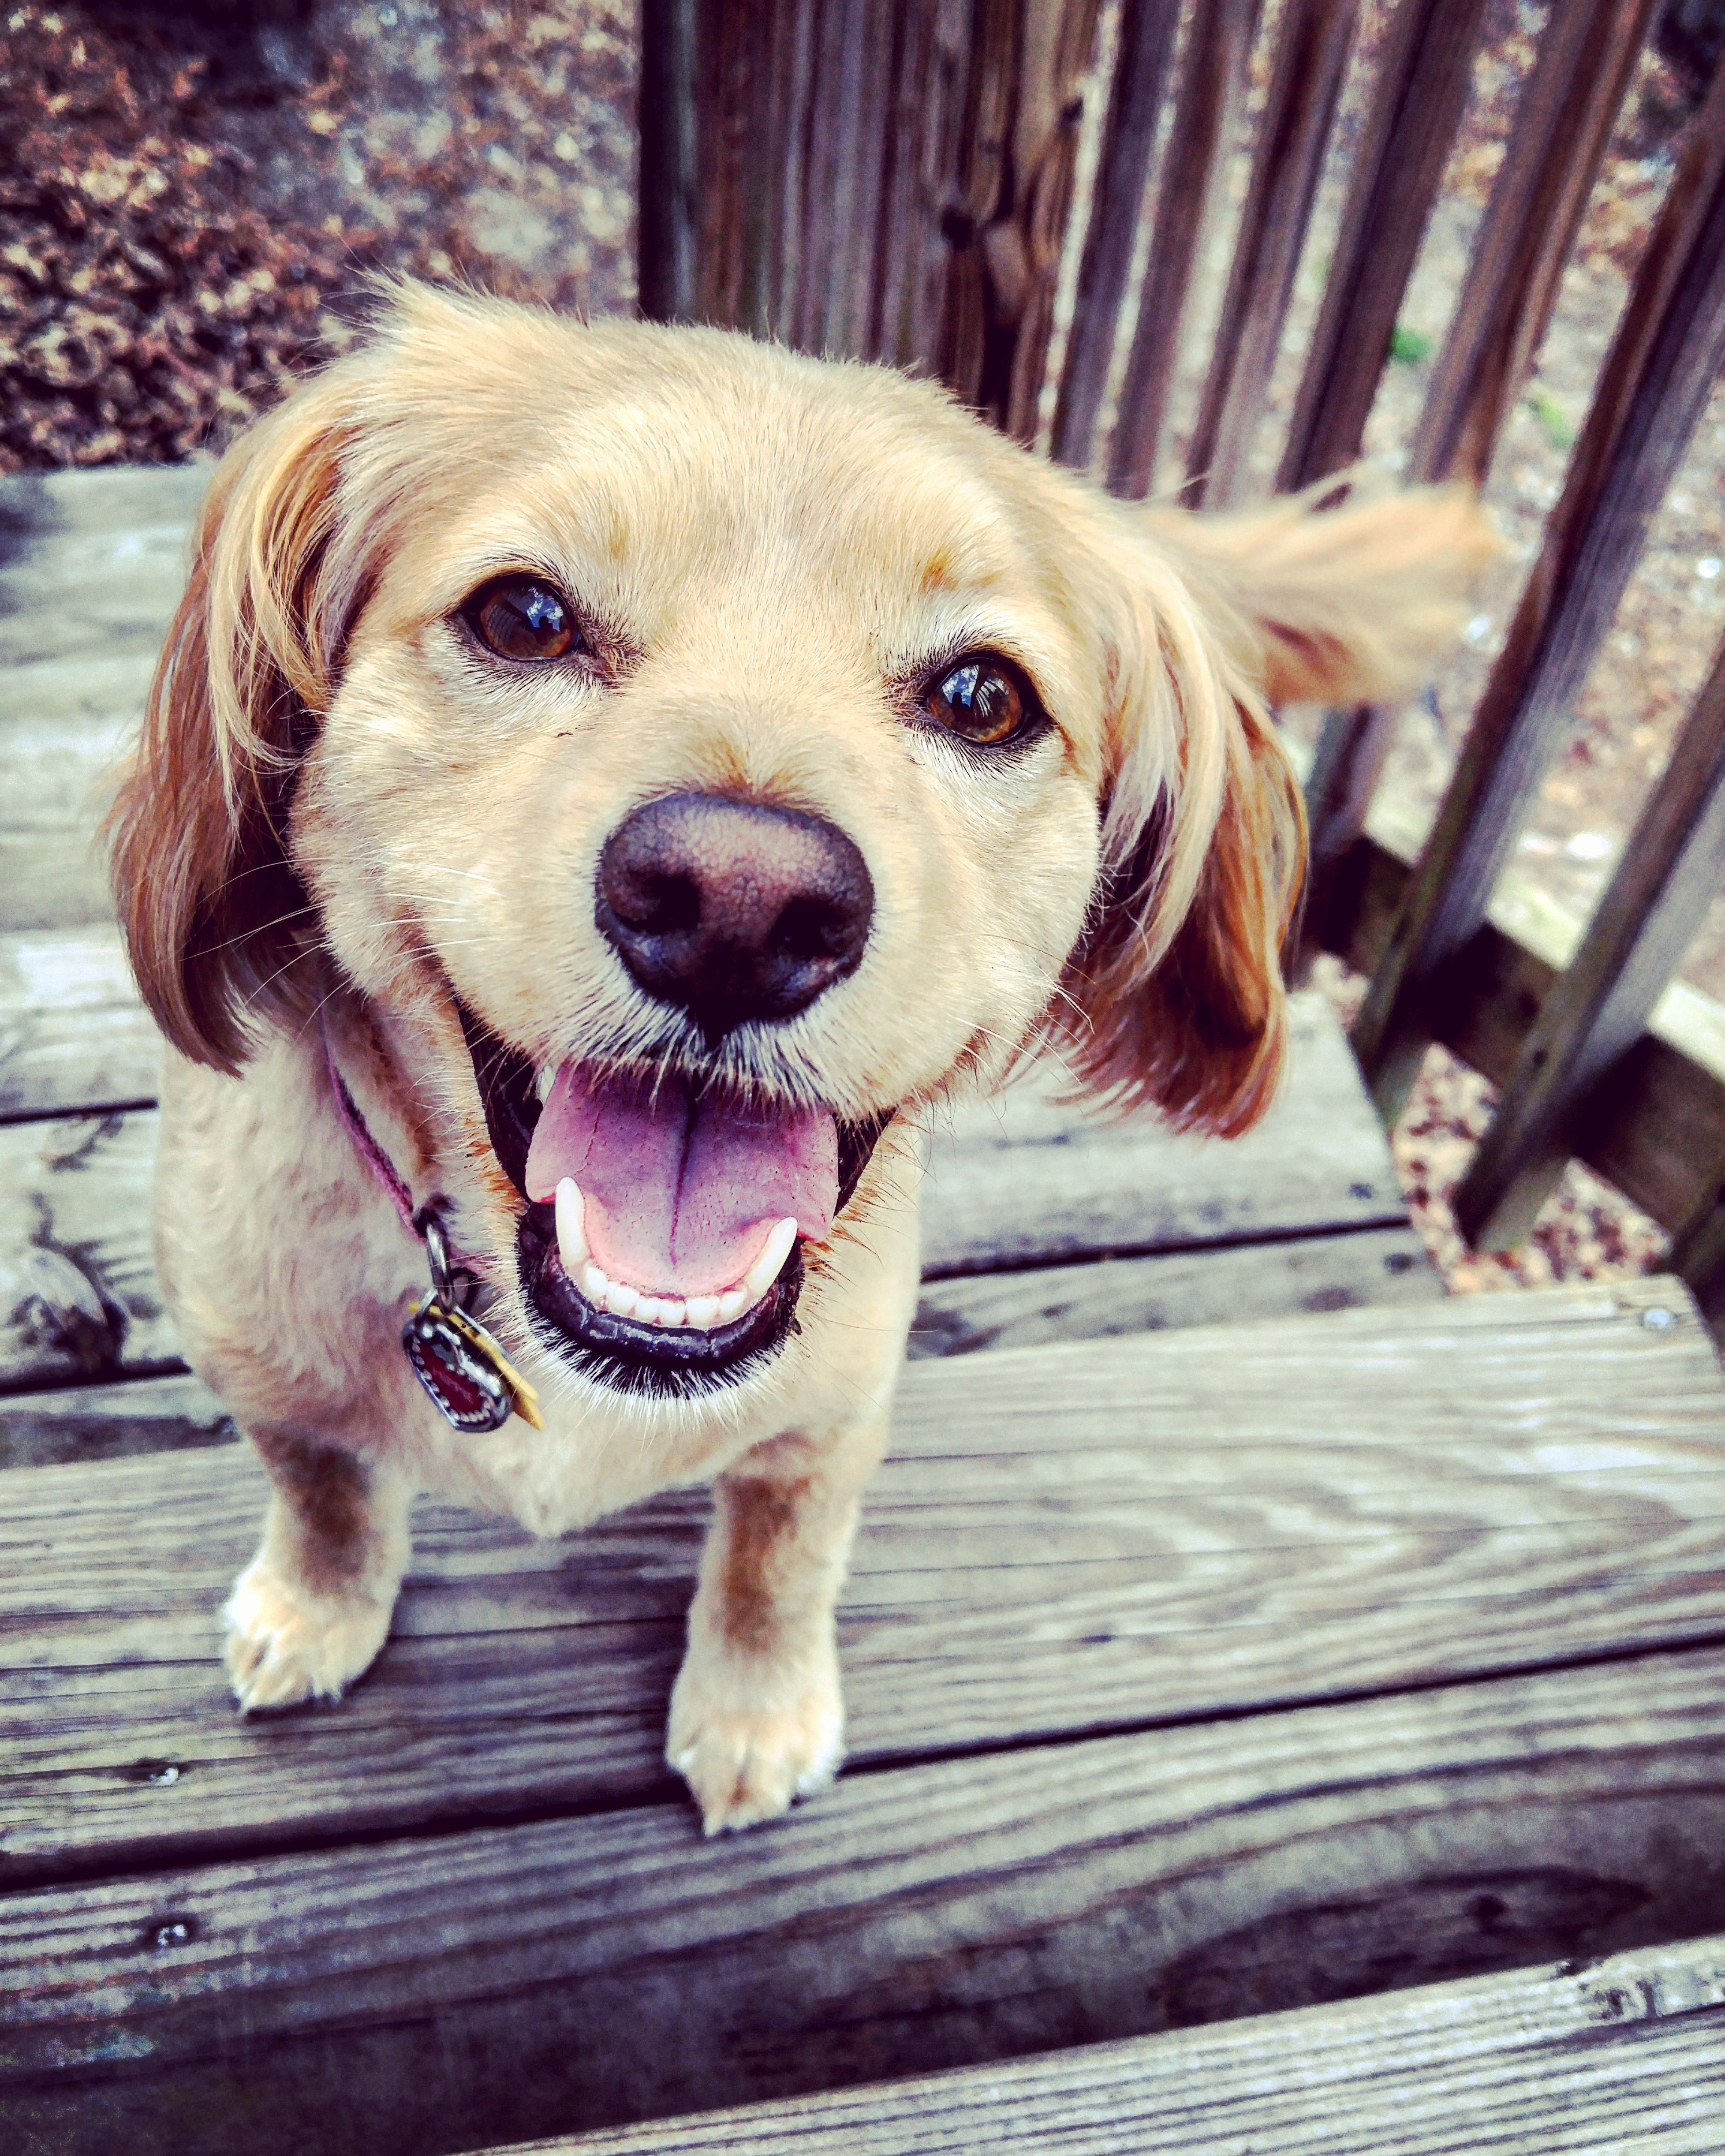 happy | happy dog | happy puppy | how to determine if your dog is happy | dogs | puppy | dog | how to | furry friend | pet owner tips | dog owner tips